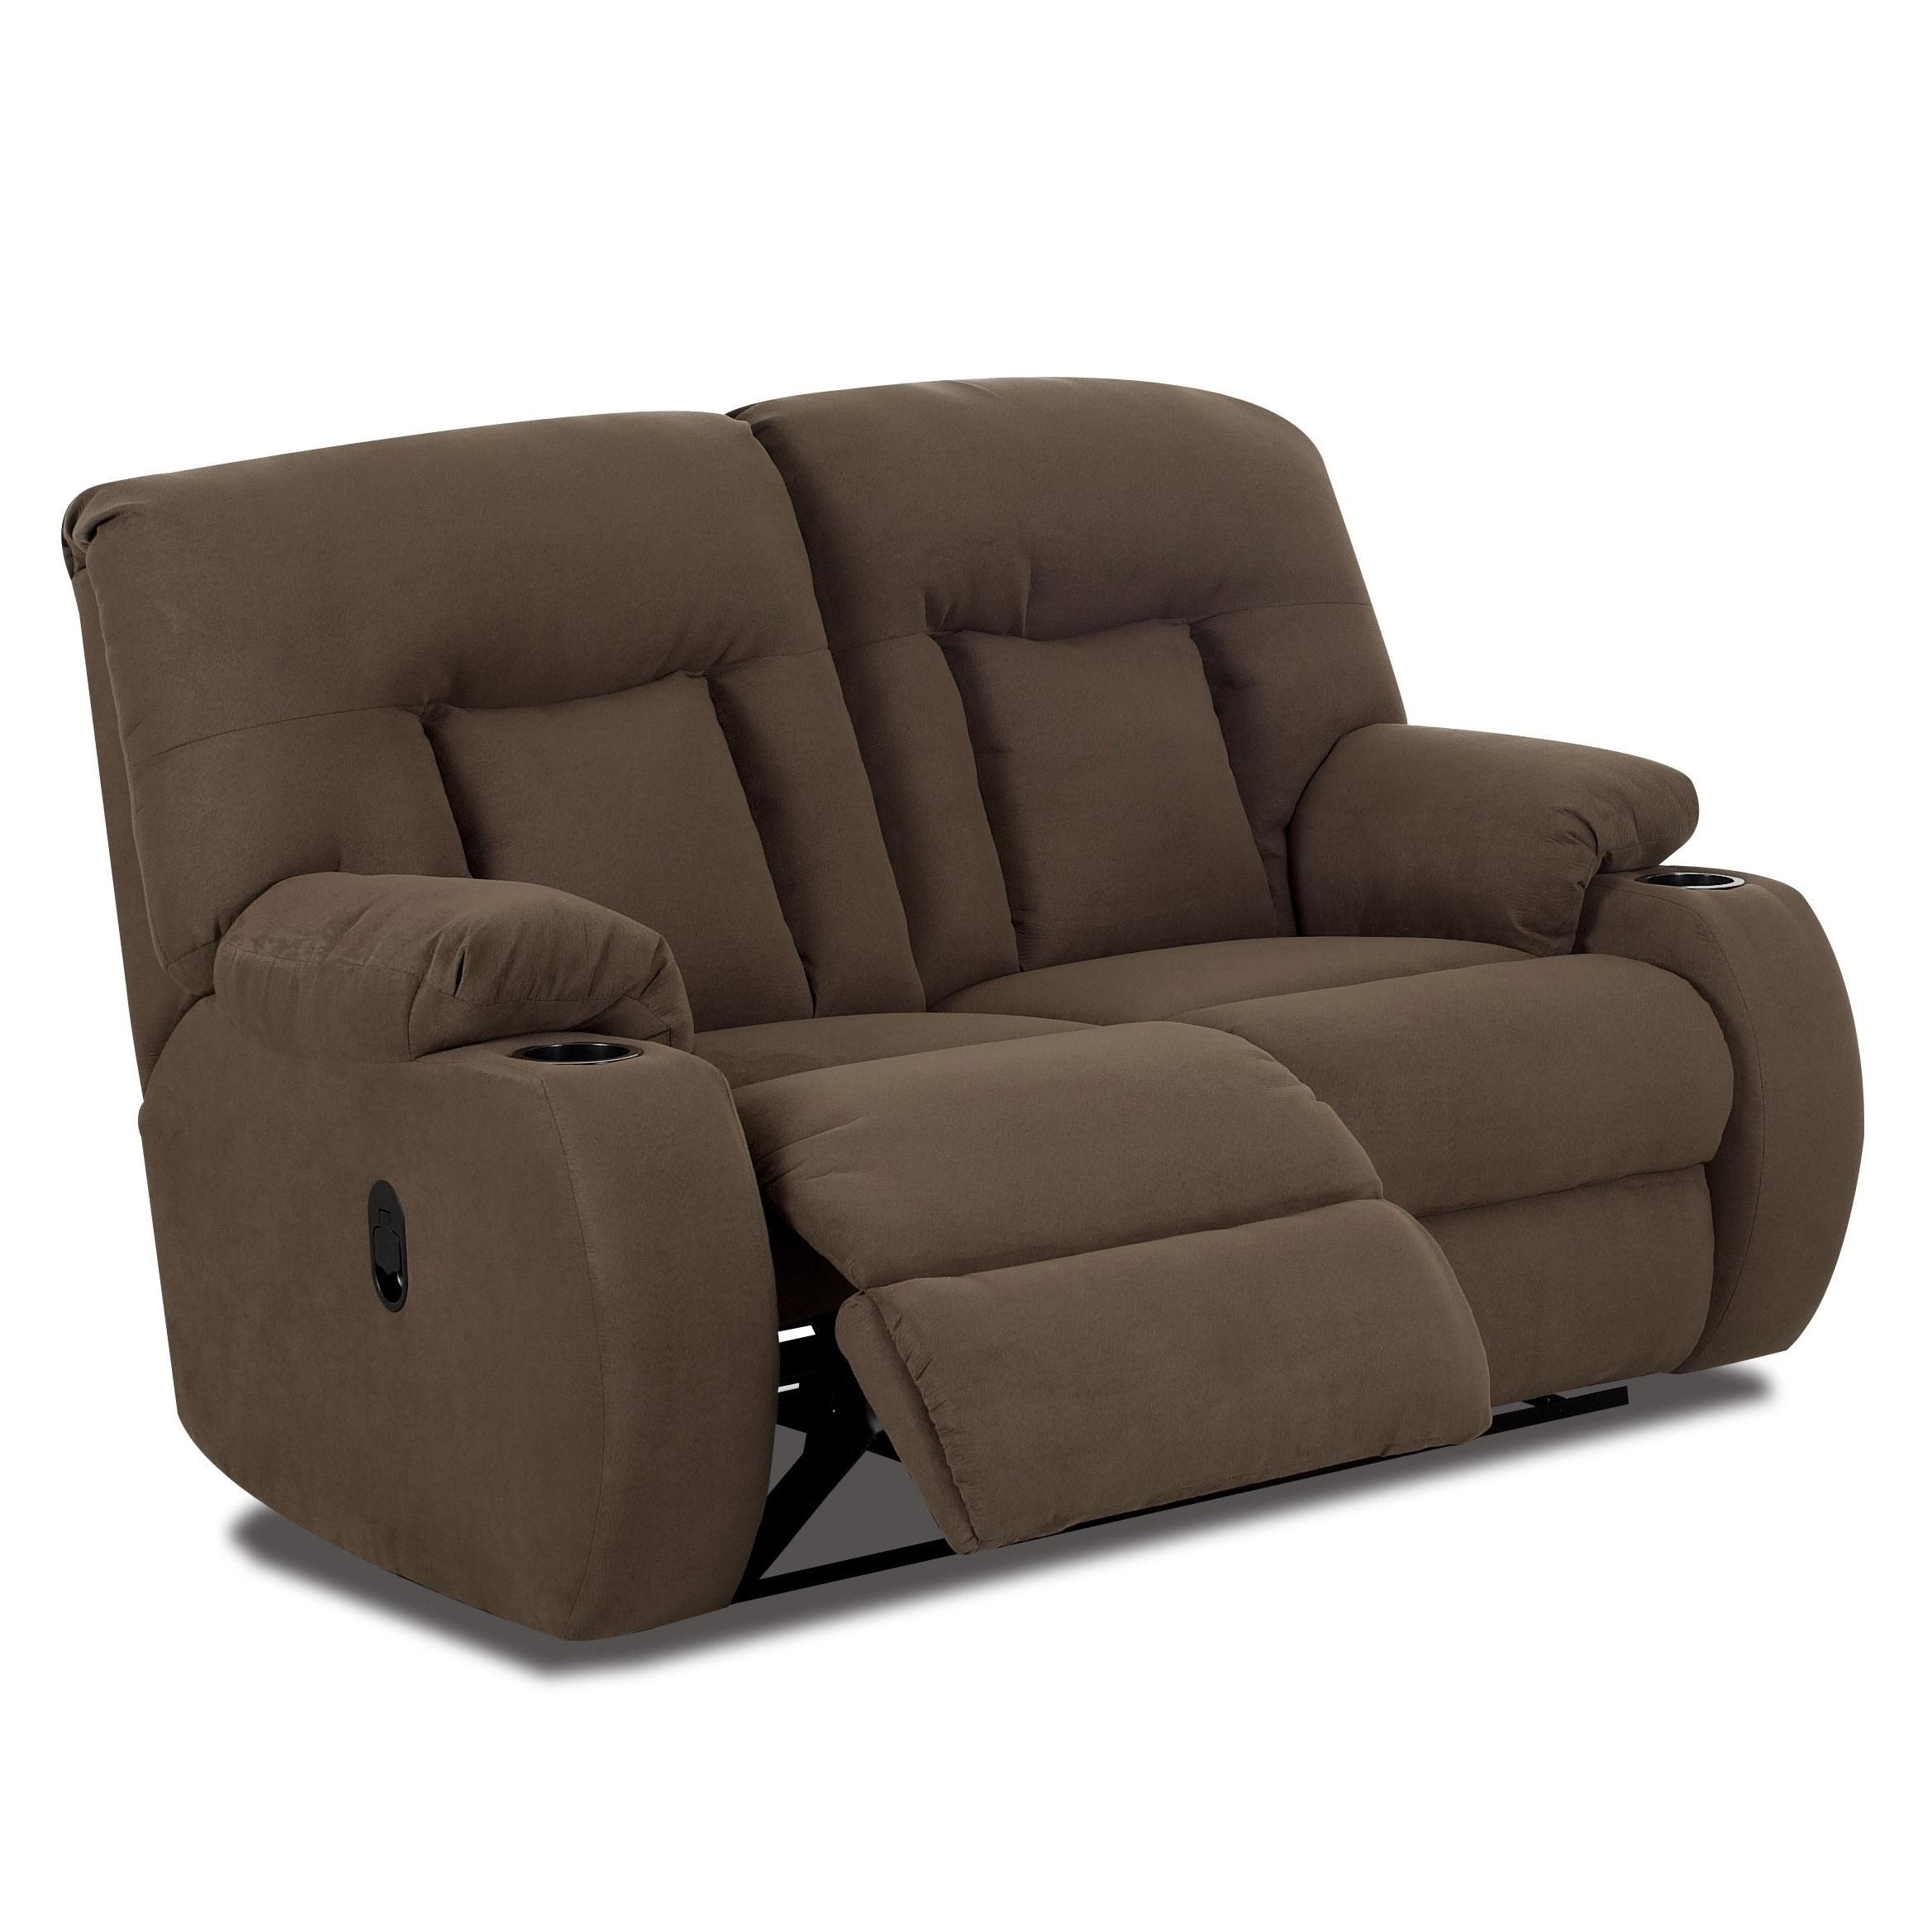 Merveilleux Reclining Loveseats With Cup Holders   Ideas On Foter